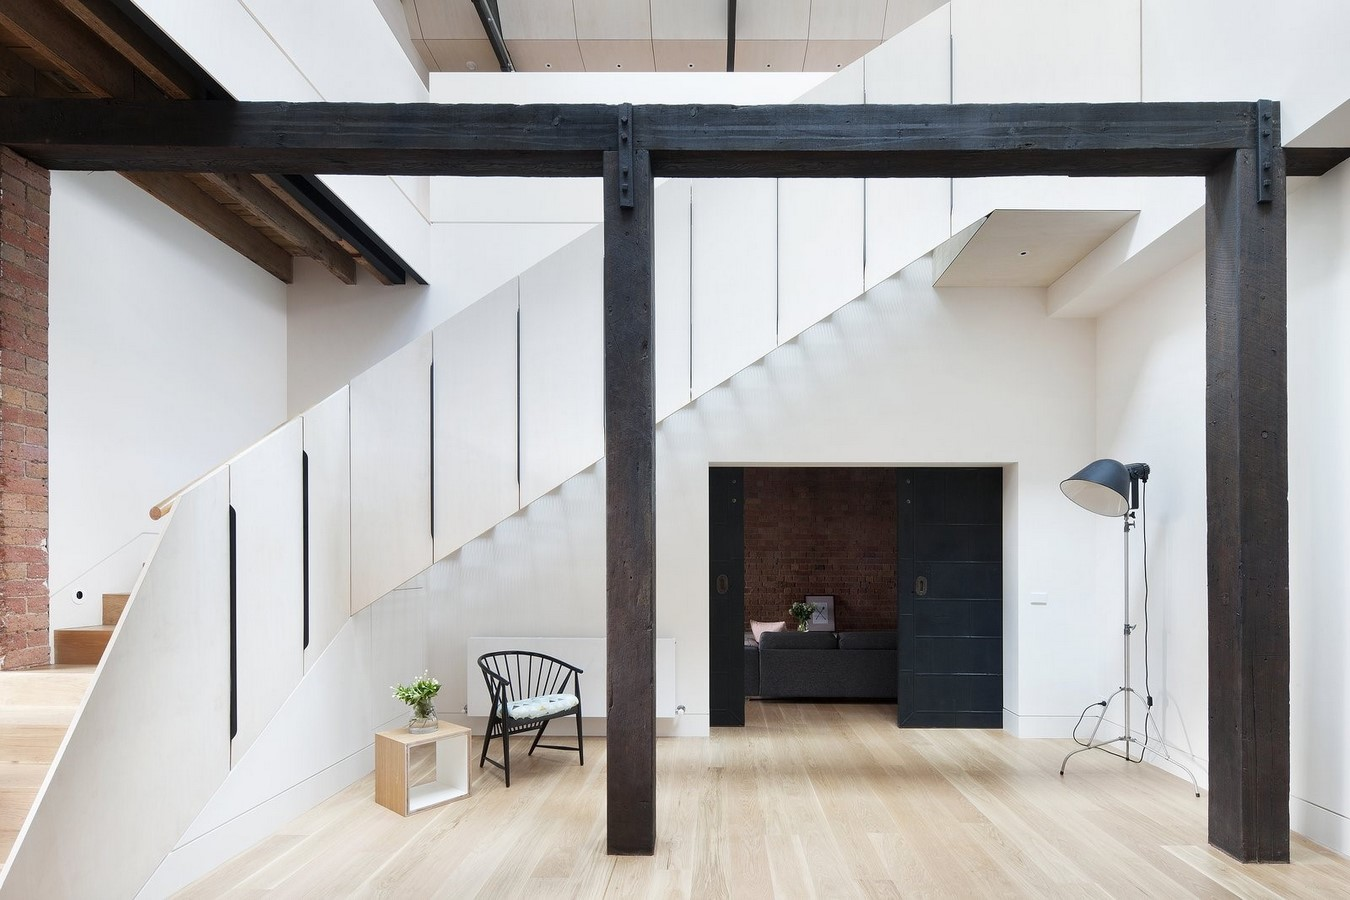 20 Examples of home with beautiful central atriums - Sheet8